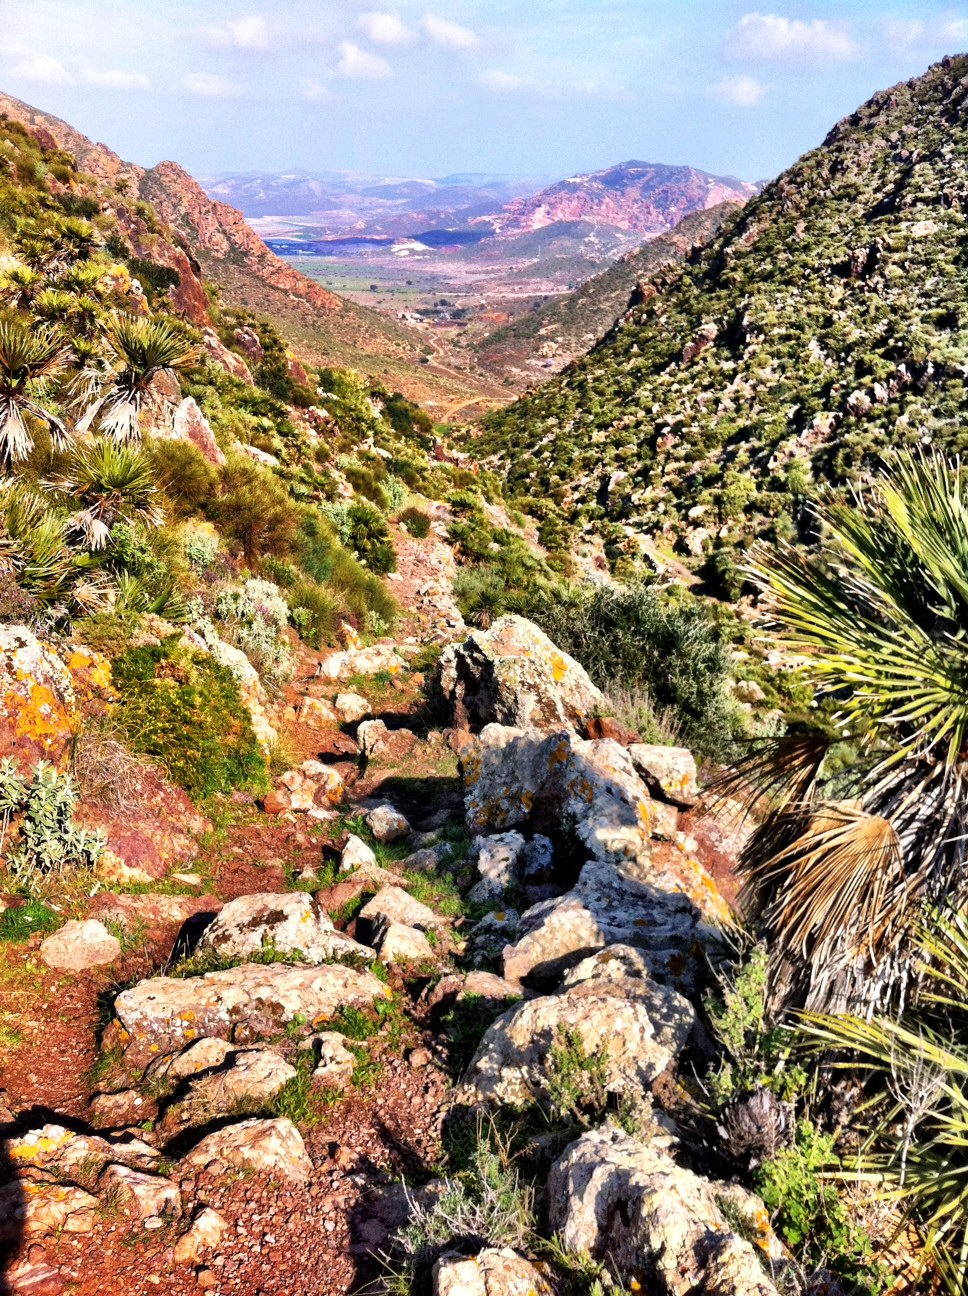 The Deep, Verdant Gorge of Cerro Cuchillo, Cabo de Gata